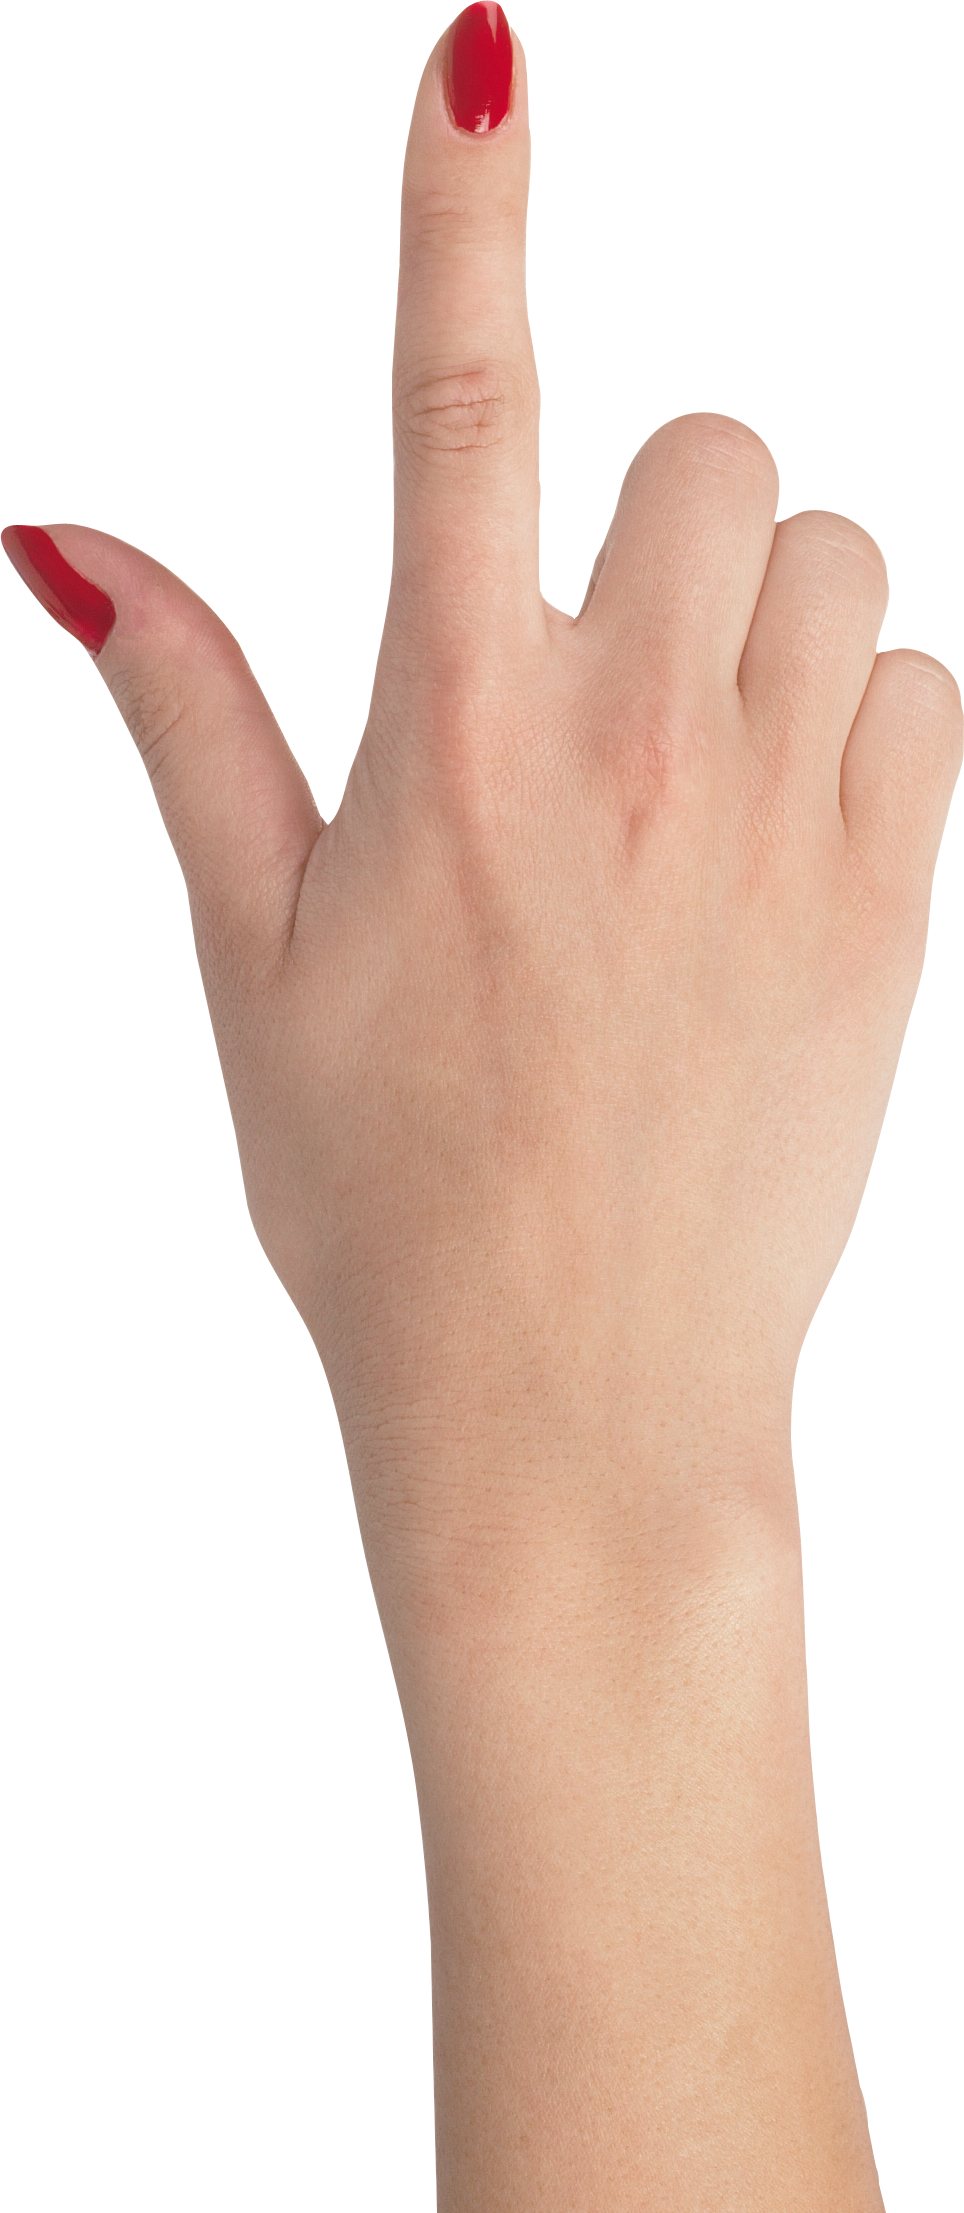 Fingers clipart short nail. Hands png icon web